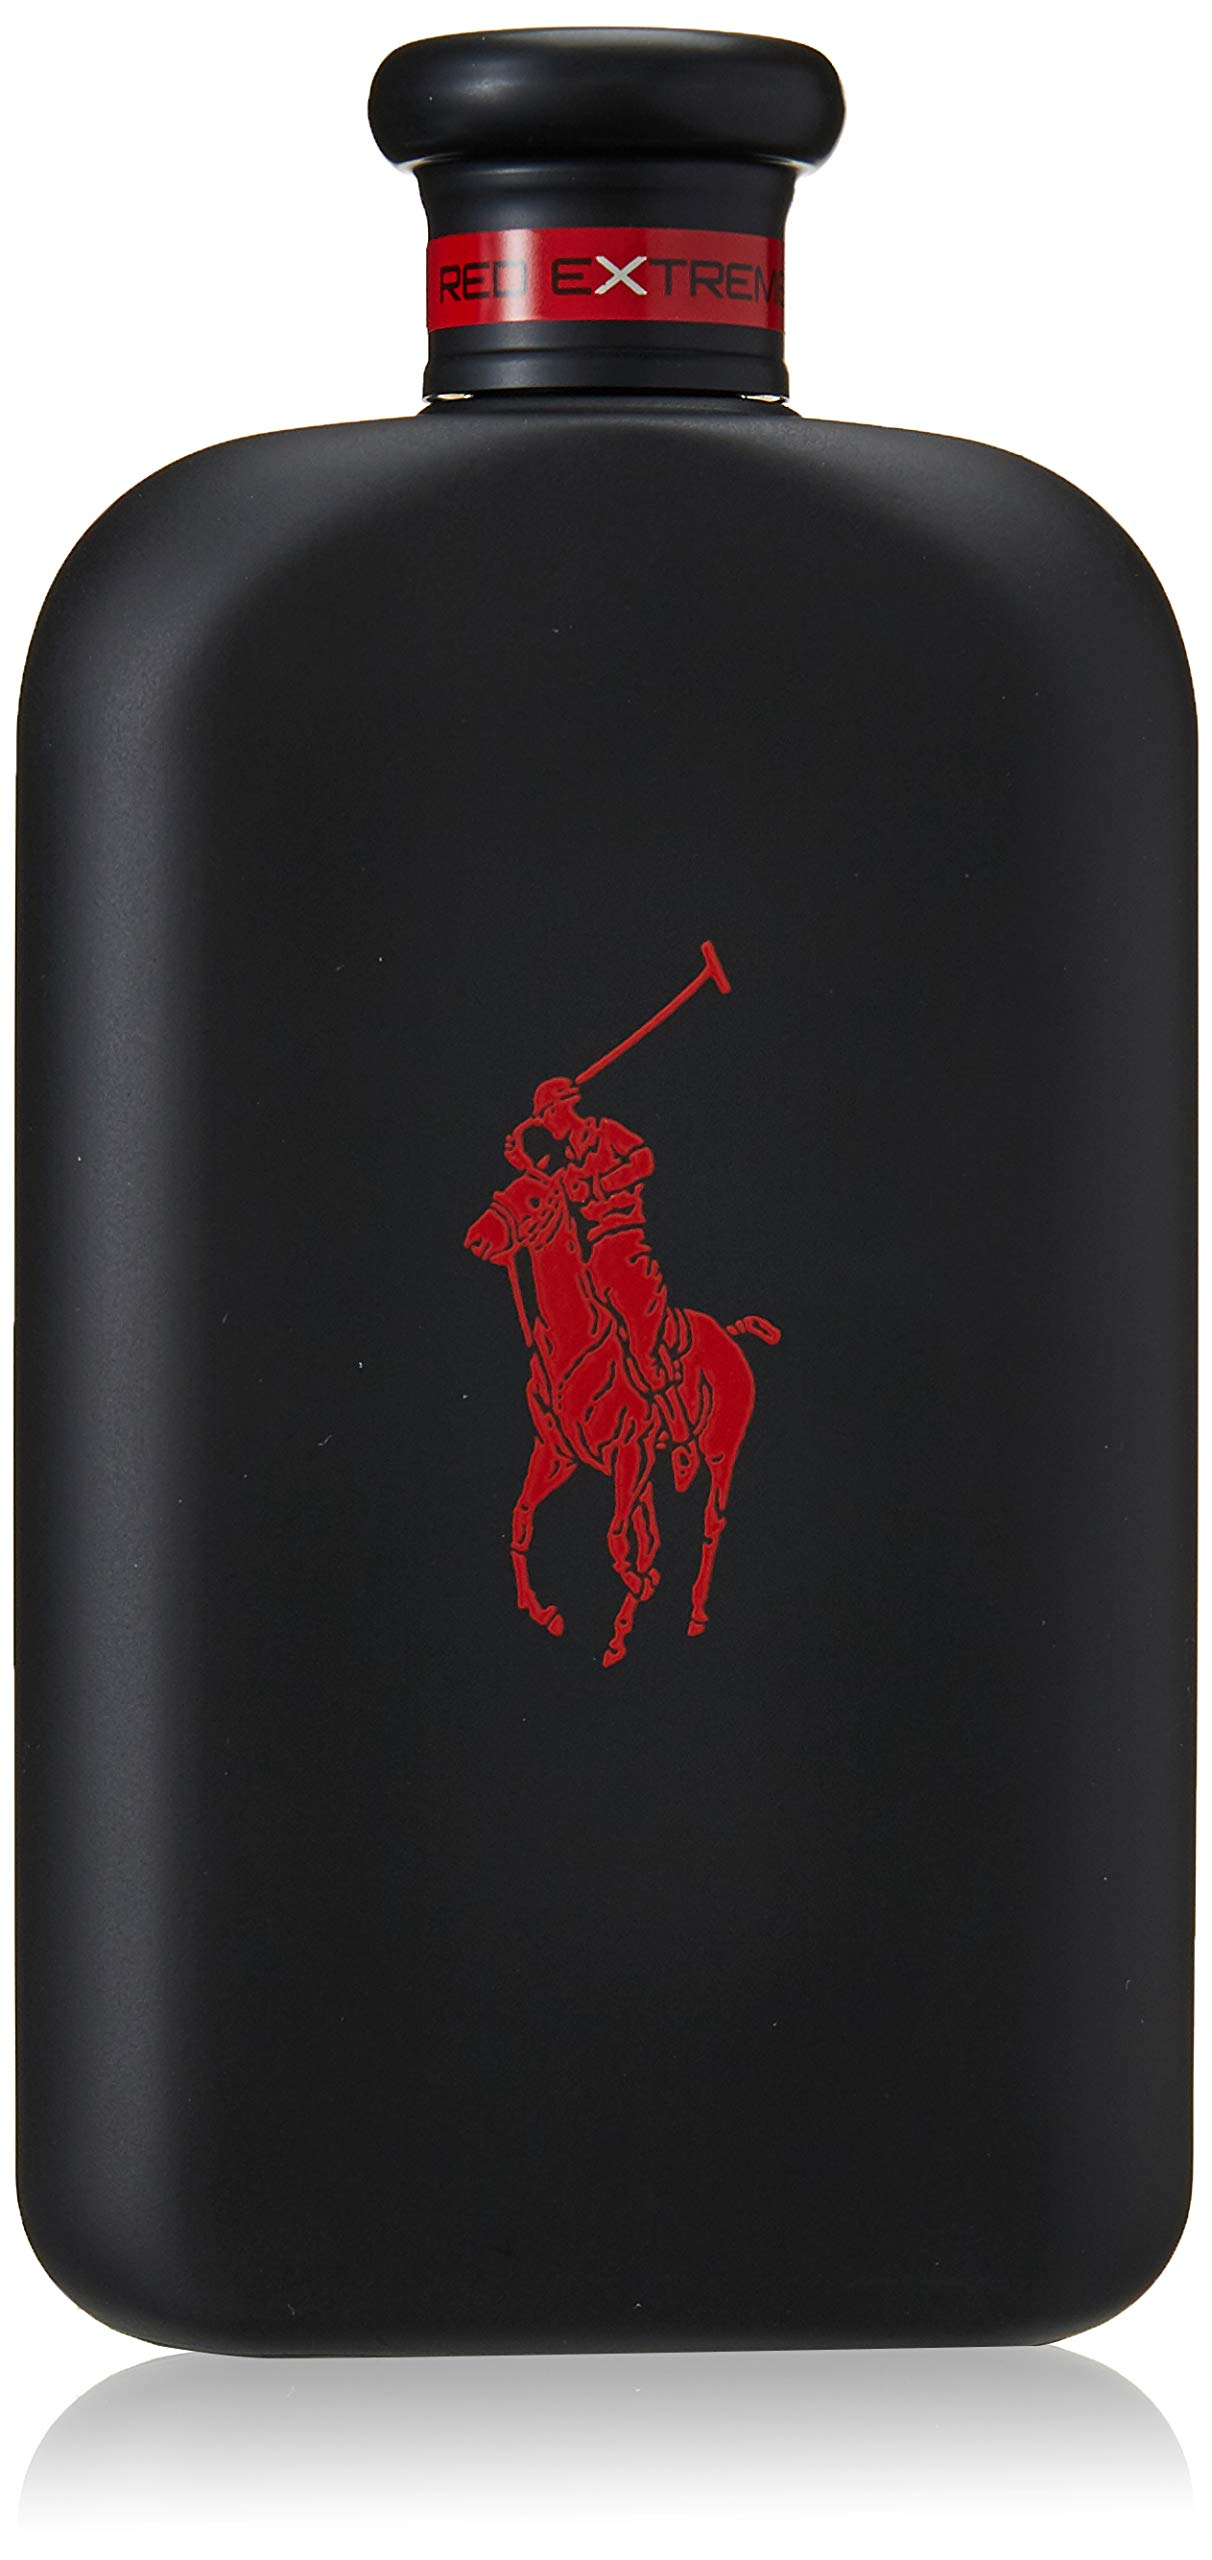 Ralph Lauren Polo Red Extreme for Men Parfum Spray, 6.7 Ounce, black by Ralph Lauren